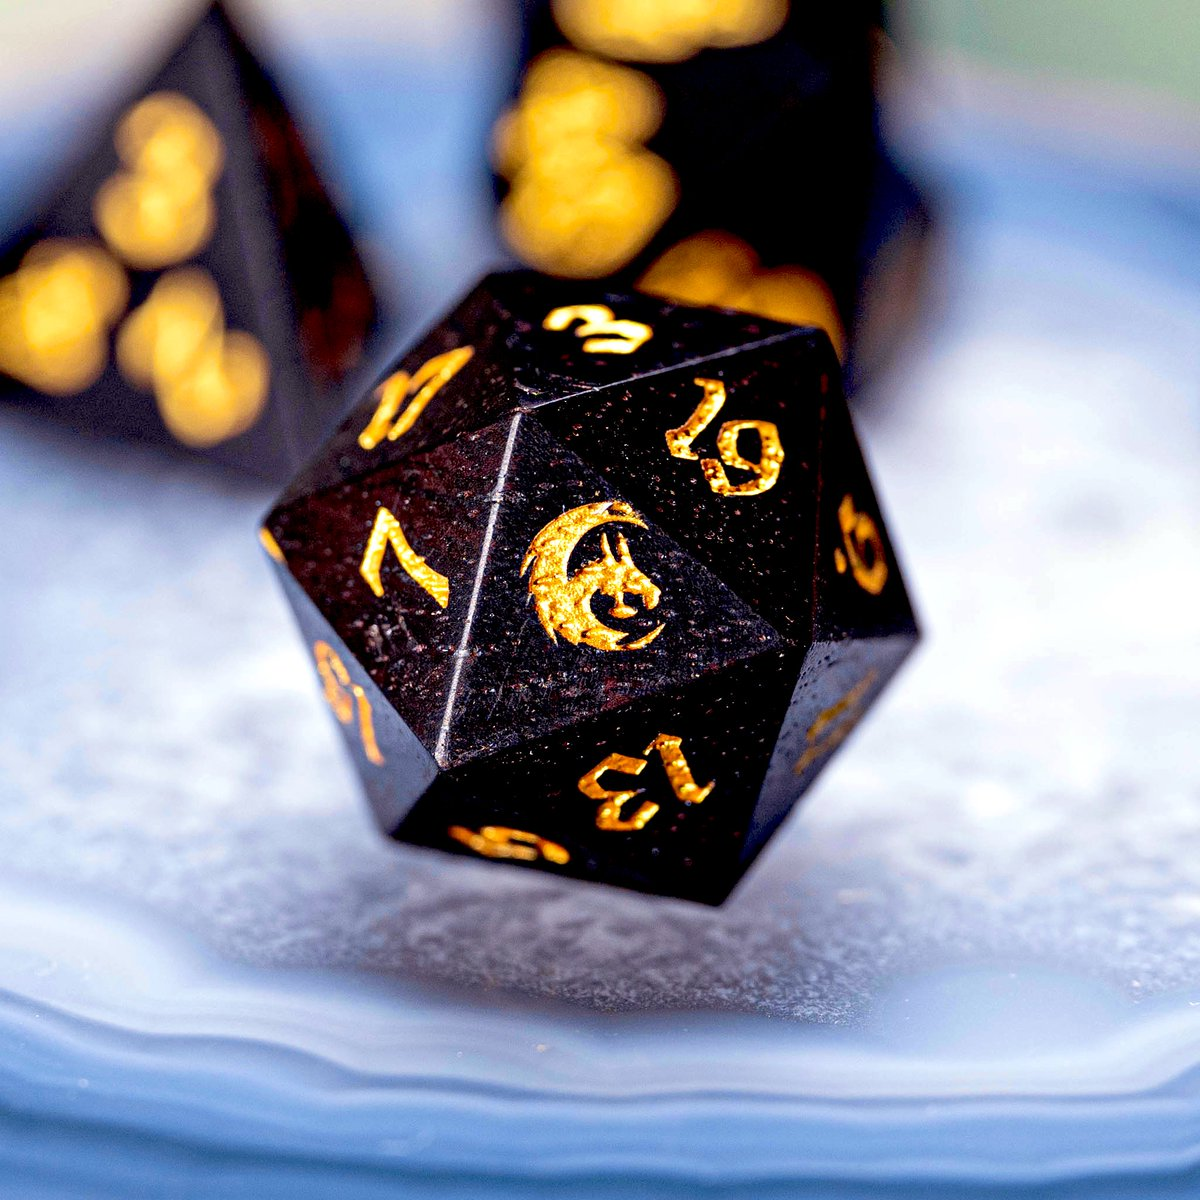 Ebony wooden dice set with dragon symbol 🧙‍♂️ #dnd #dice #ttrpg #dungeonsanddragons